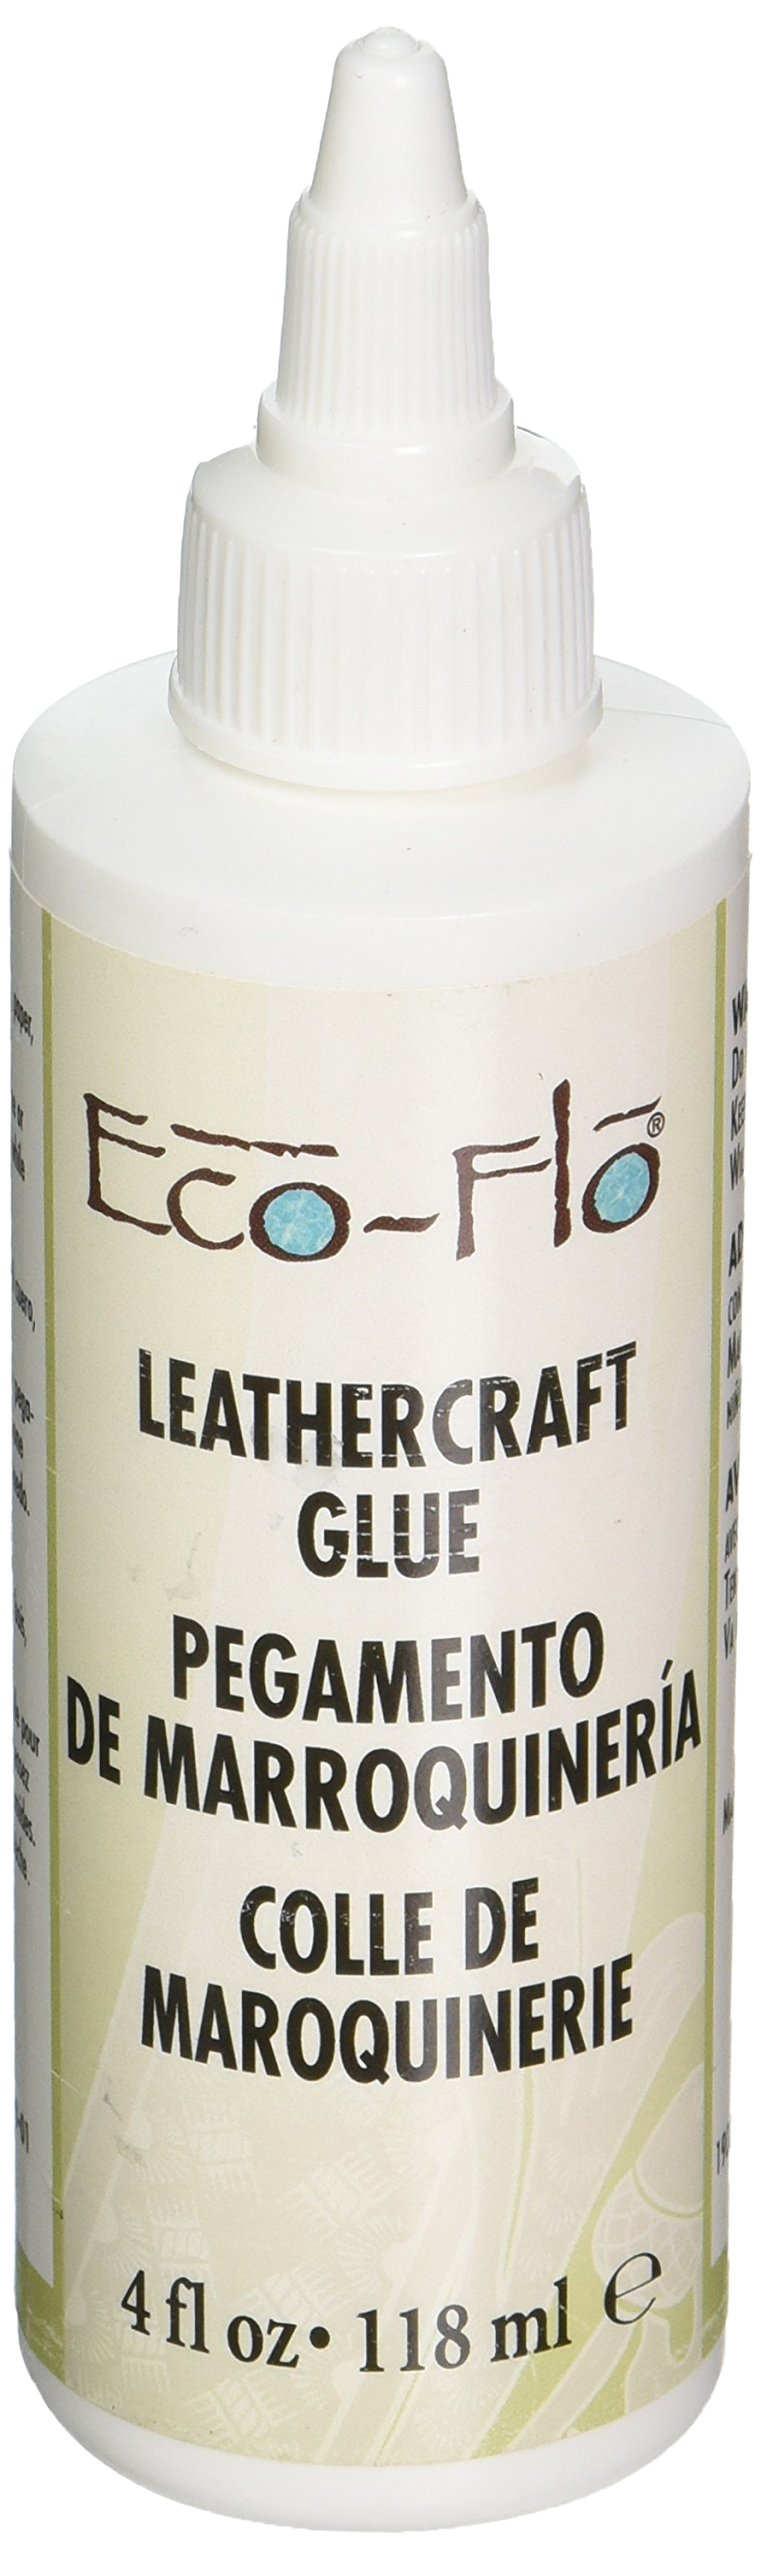 Tandy Leather Eco-Flo Leathercraft Glue